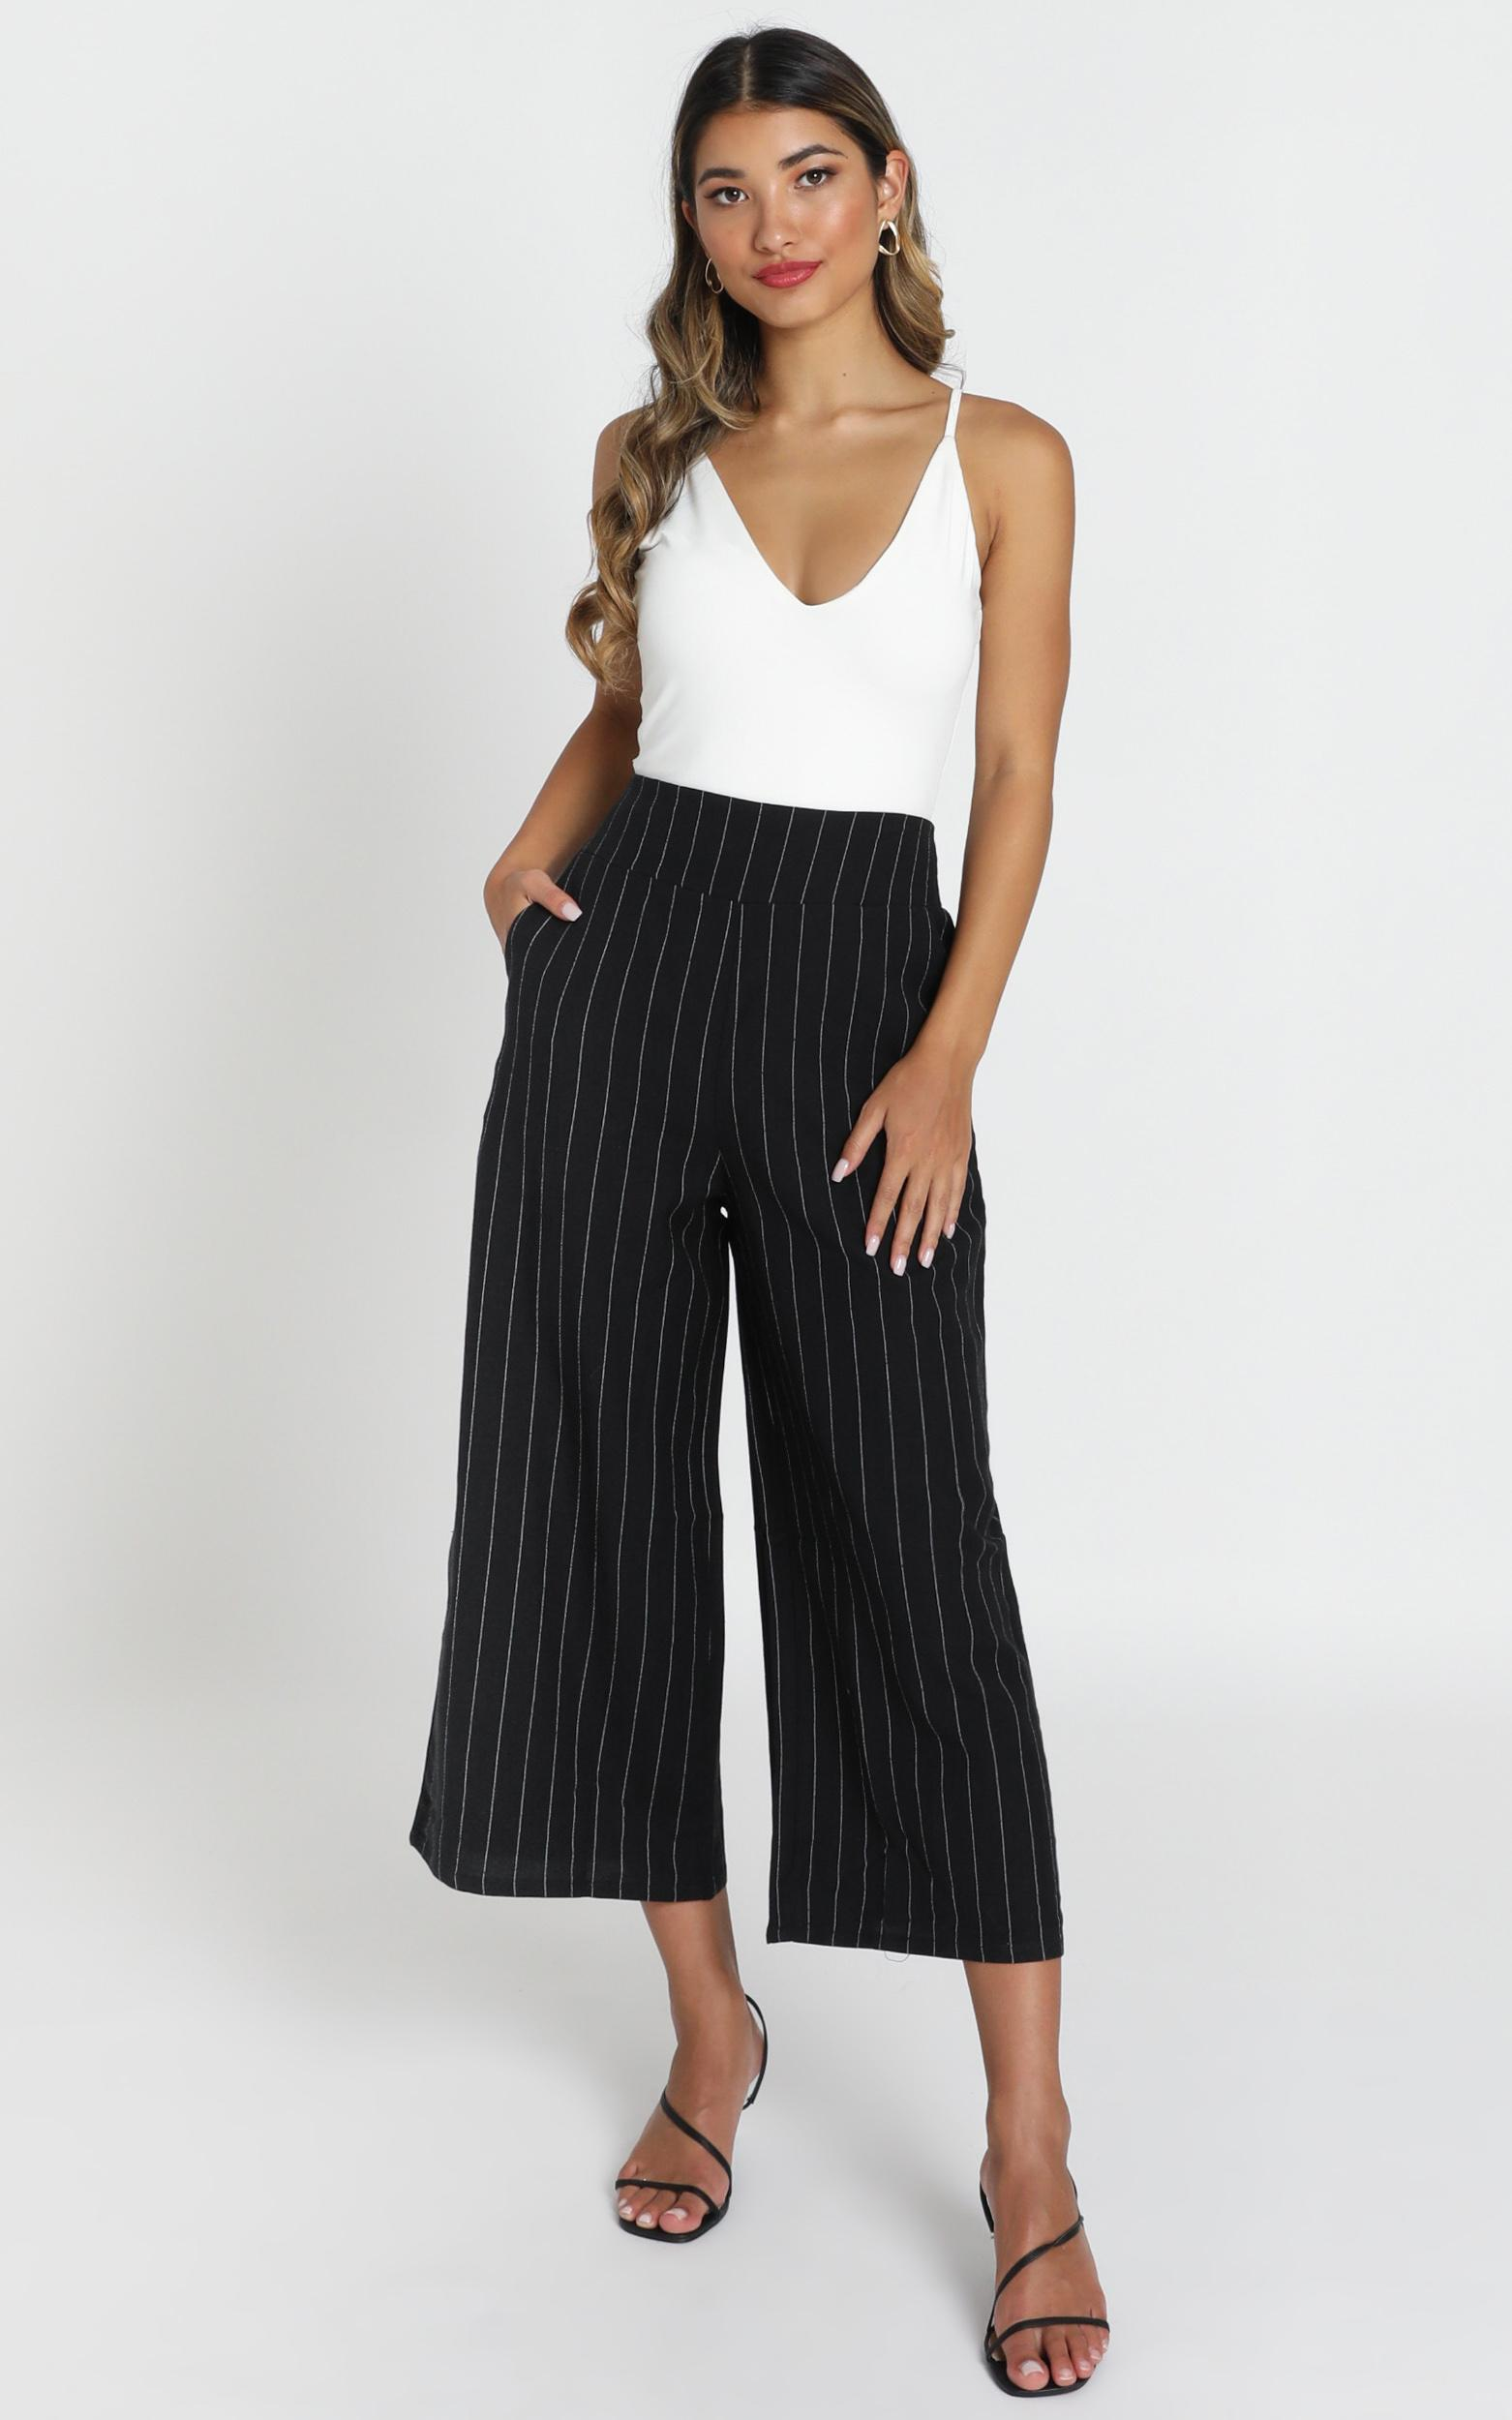 Ricki Cropped Pants in black pin stripe - 6 (XS), Black, hi-res image number null